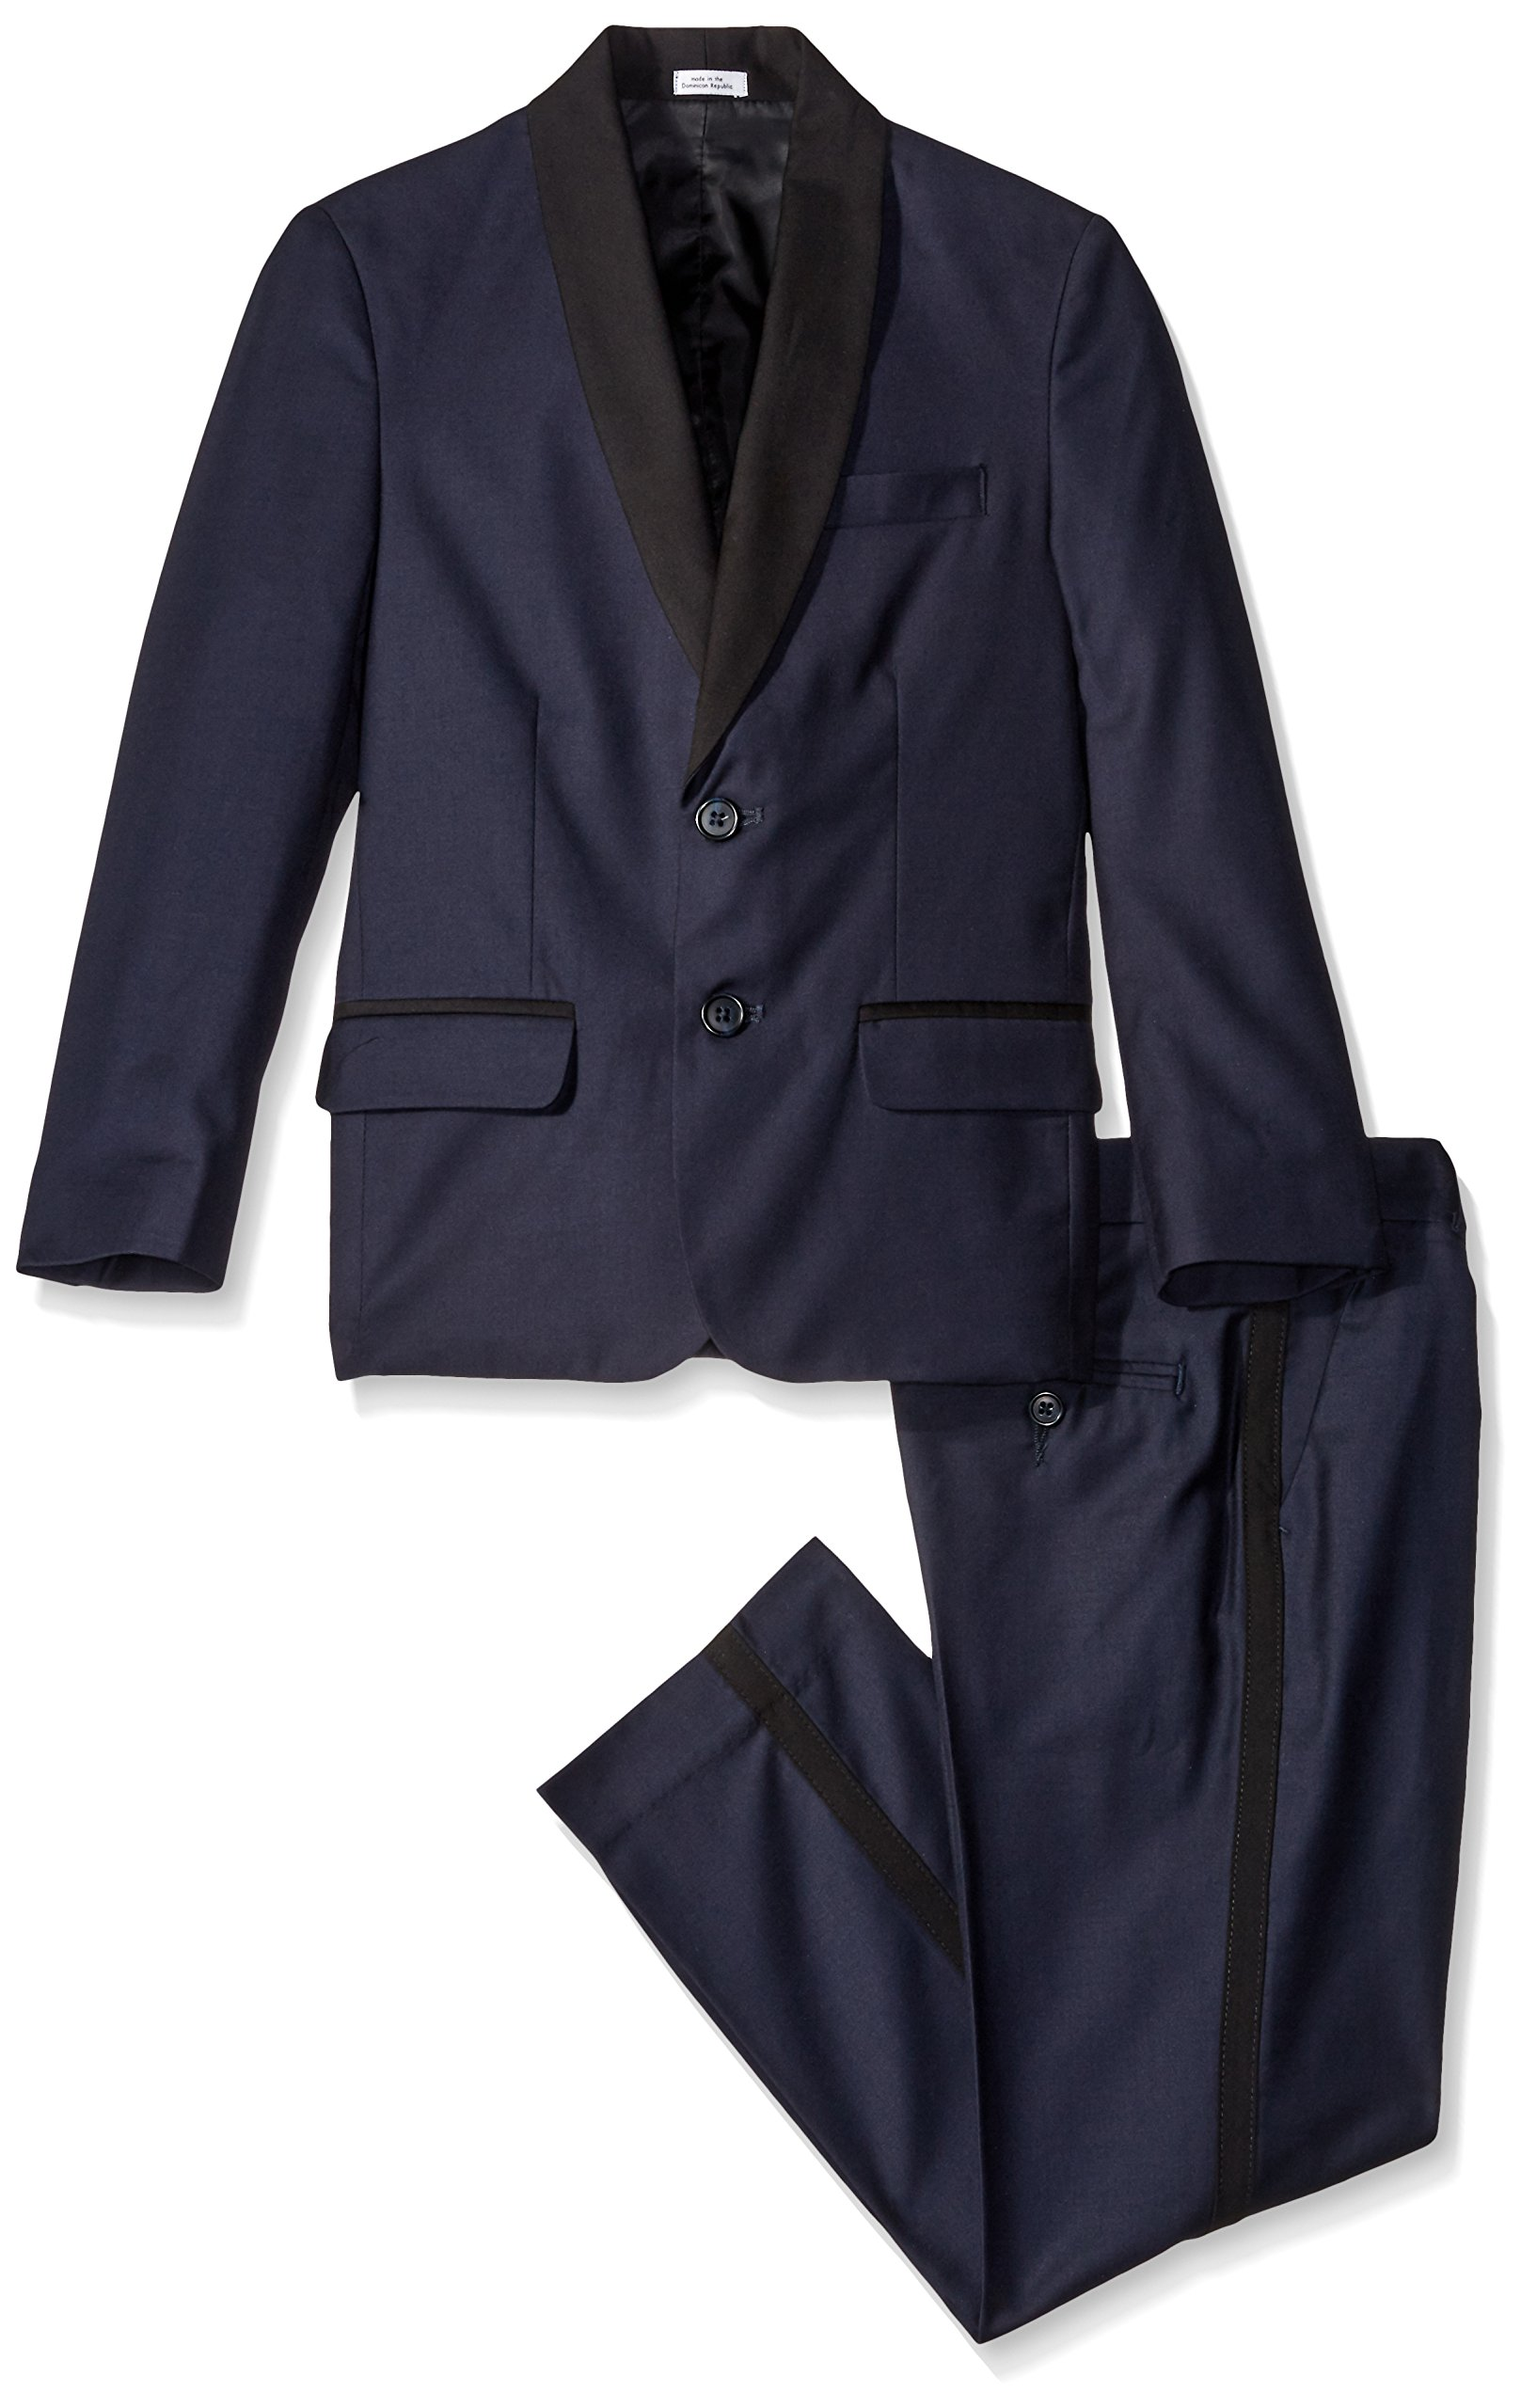 Calvin Klein Boys' Tuxedo Suit, Midnight, 8 by Calvin Klein